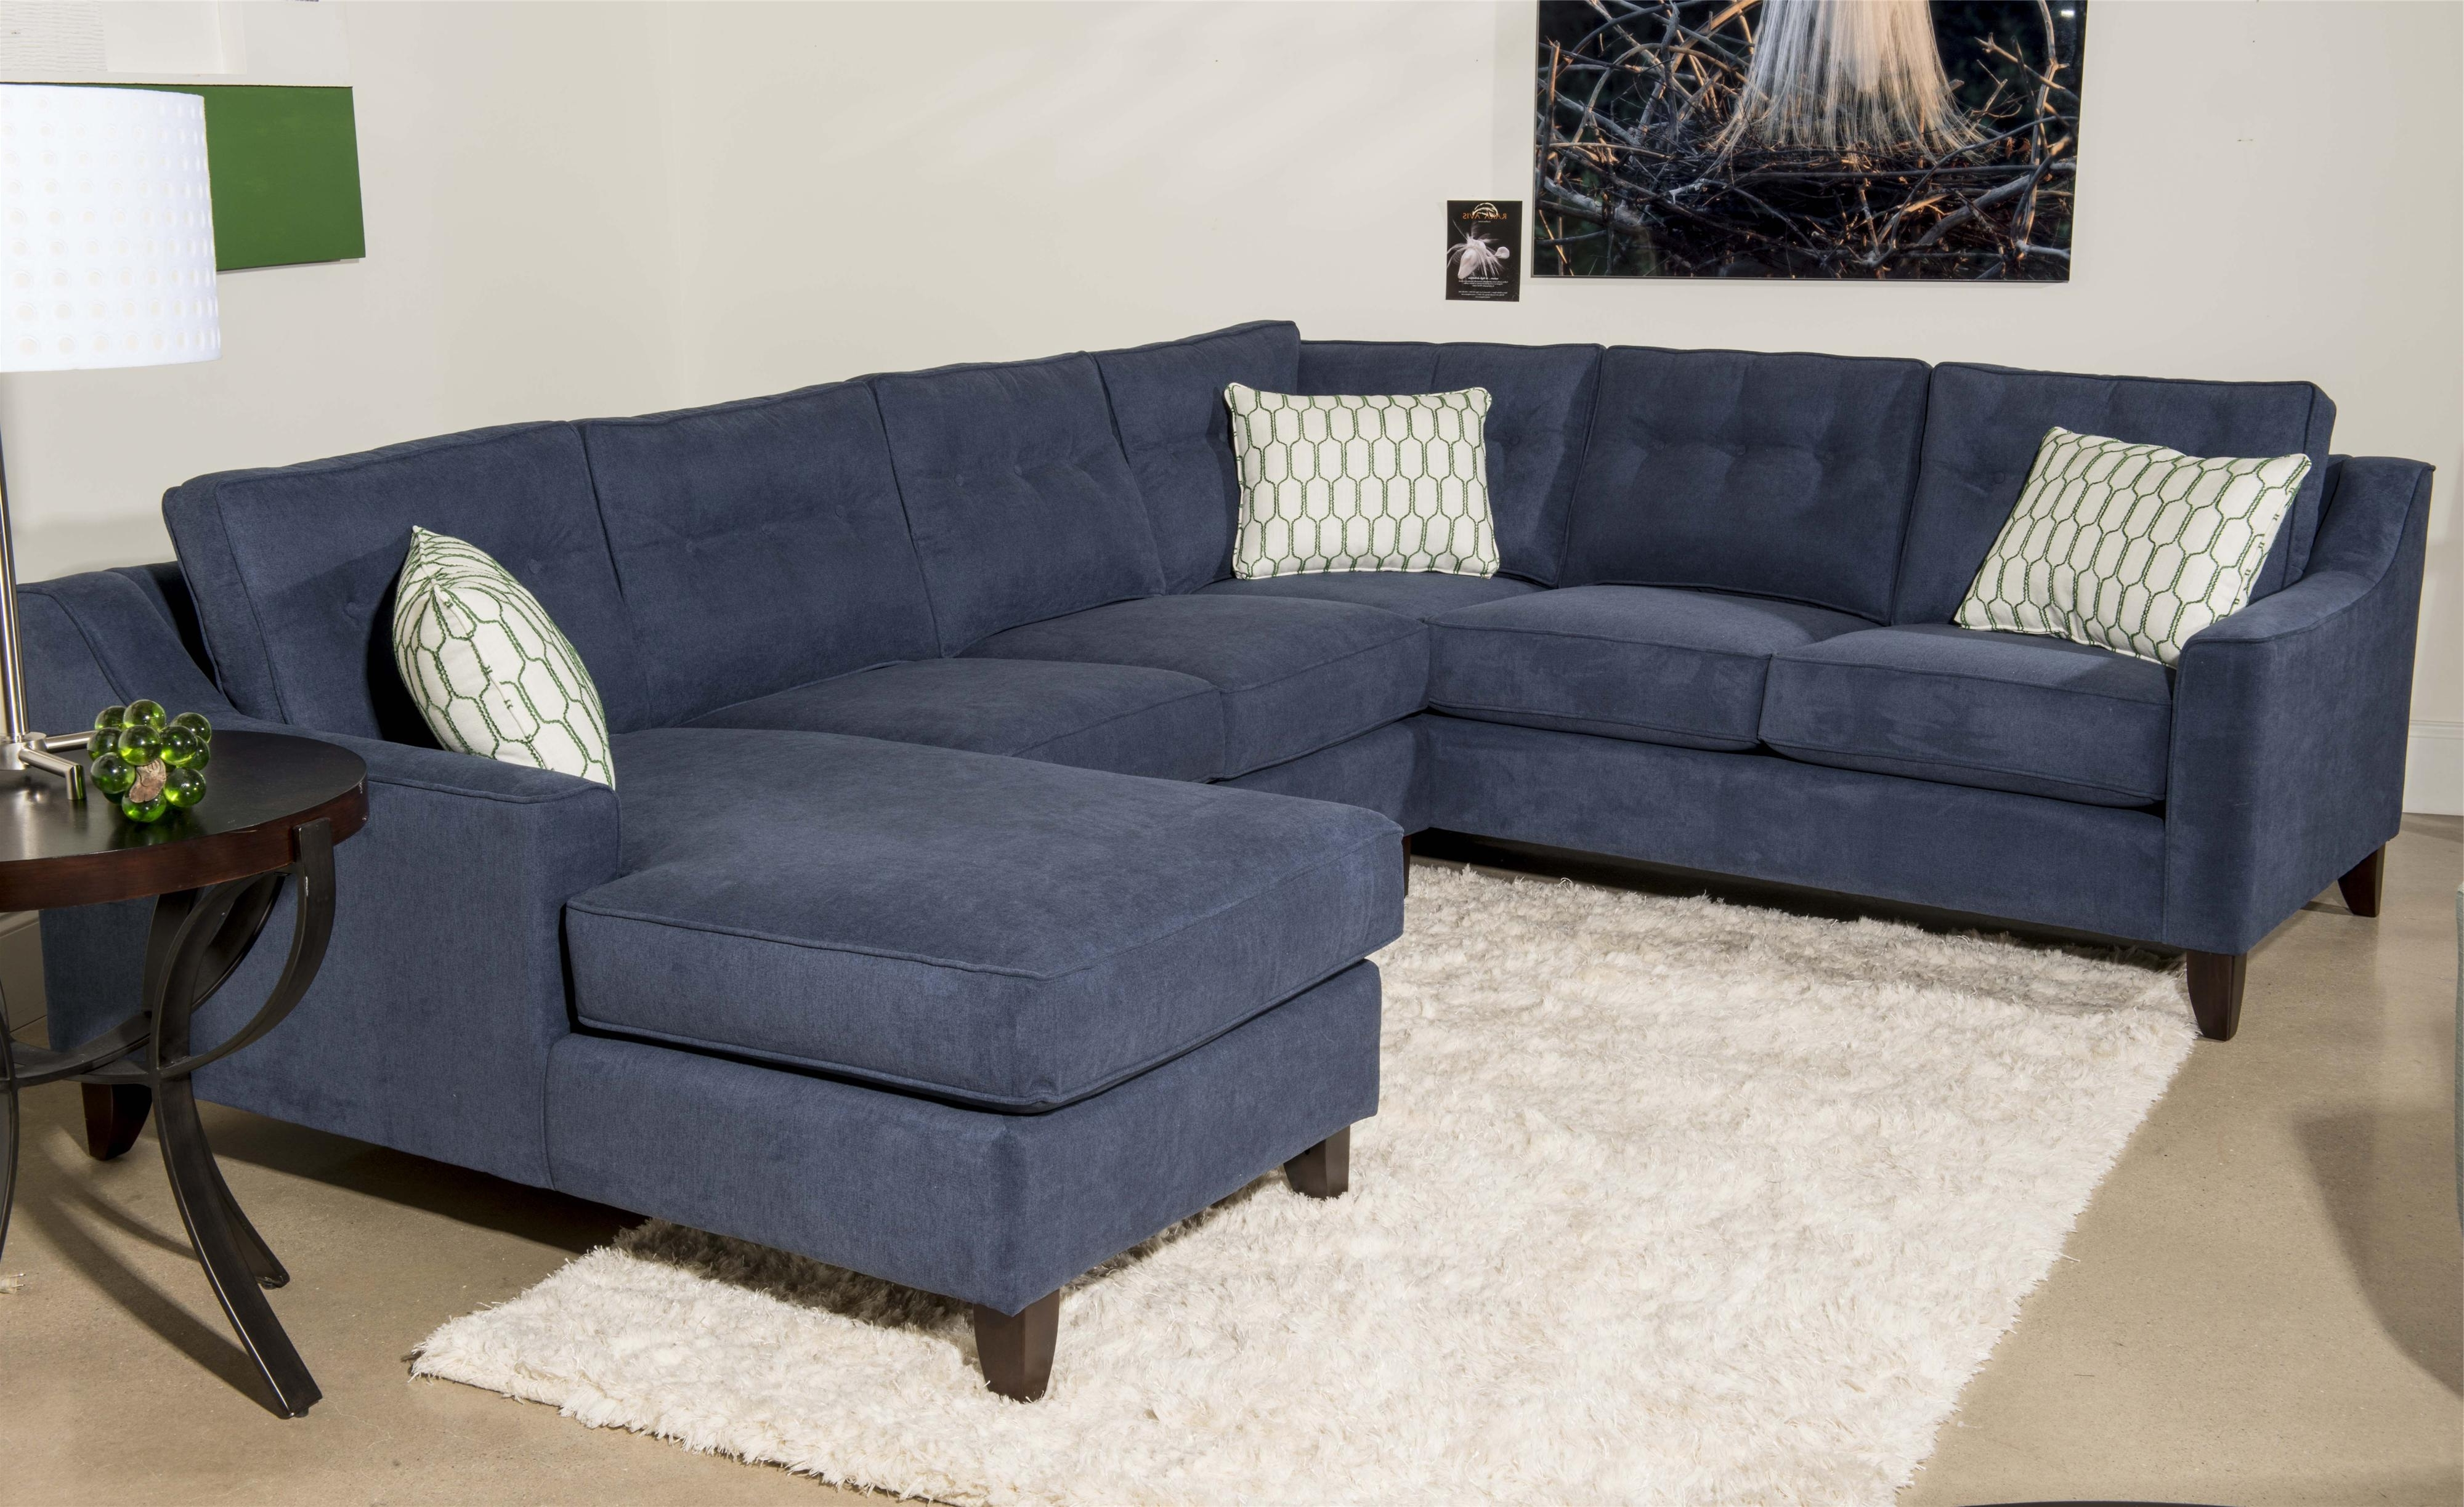 Newest Sectional Sofa Design: 3 Pieces Wonderful Sofa With Chaise 3 Piece Inside Chaise Sectional Sofas (View 13 of 15)